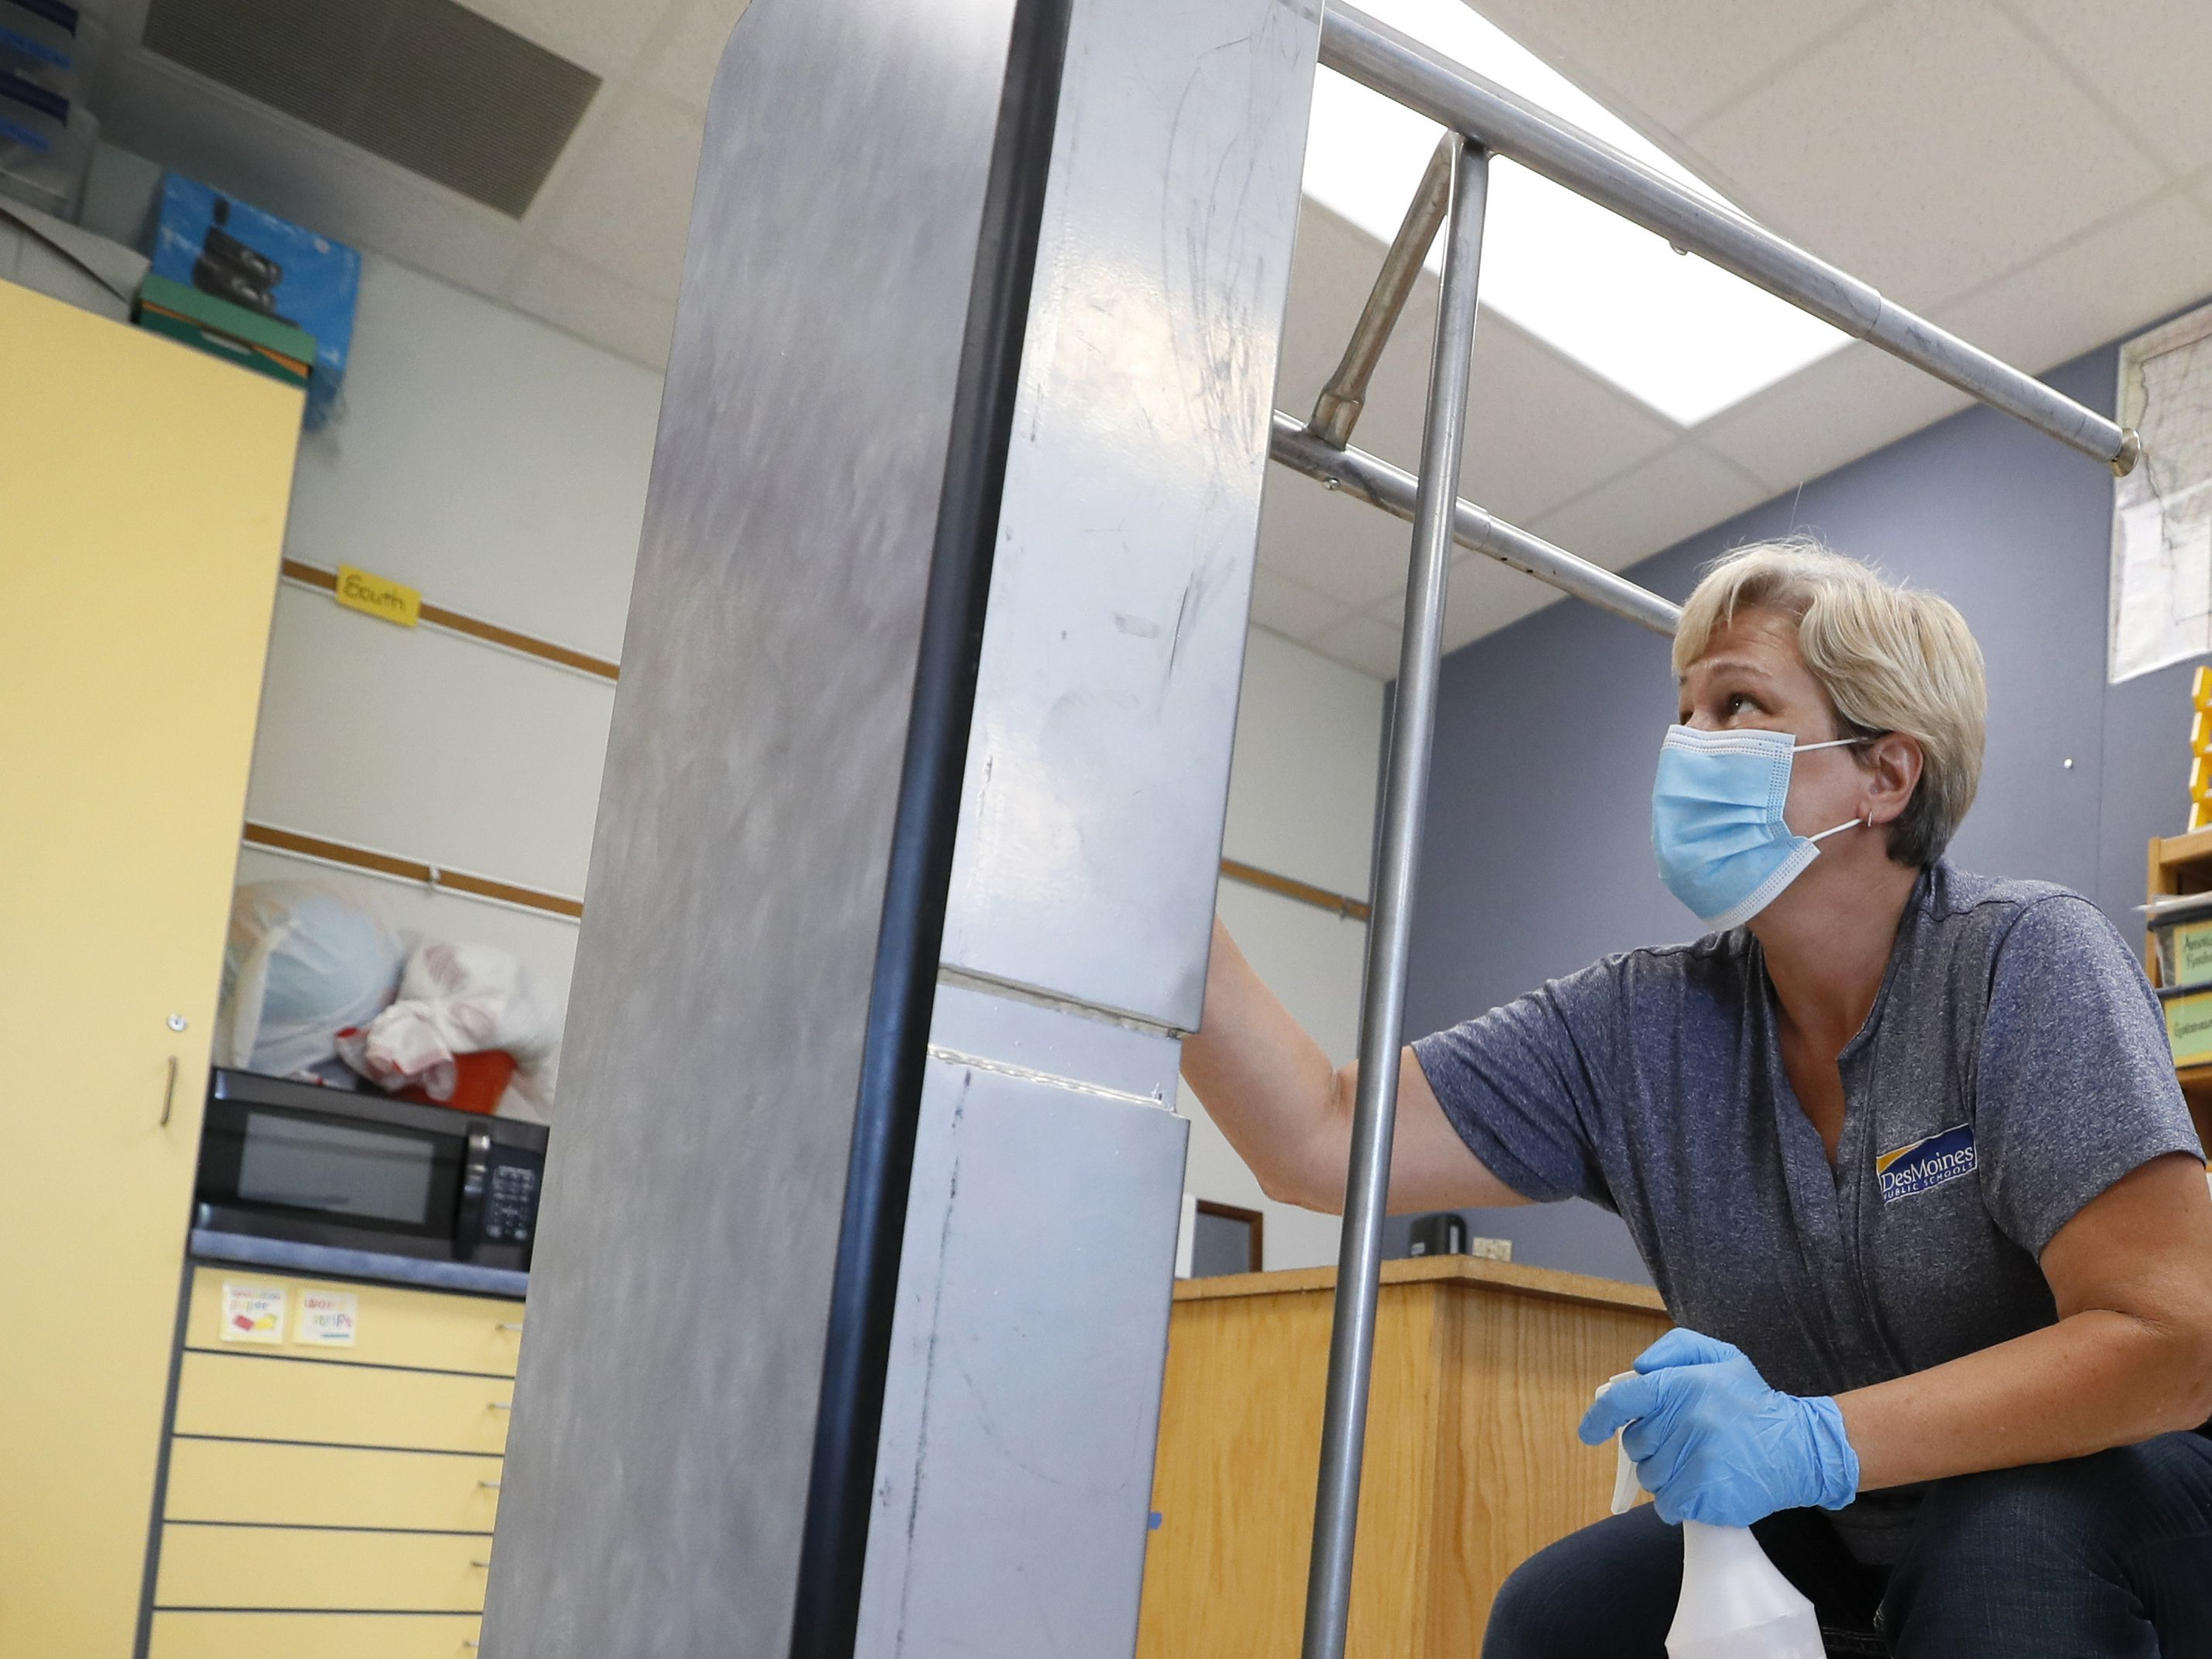 Will school districts be able to get the proper cleaning supplies?